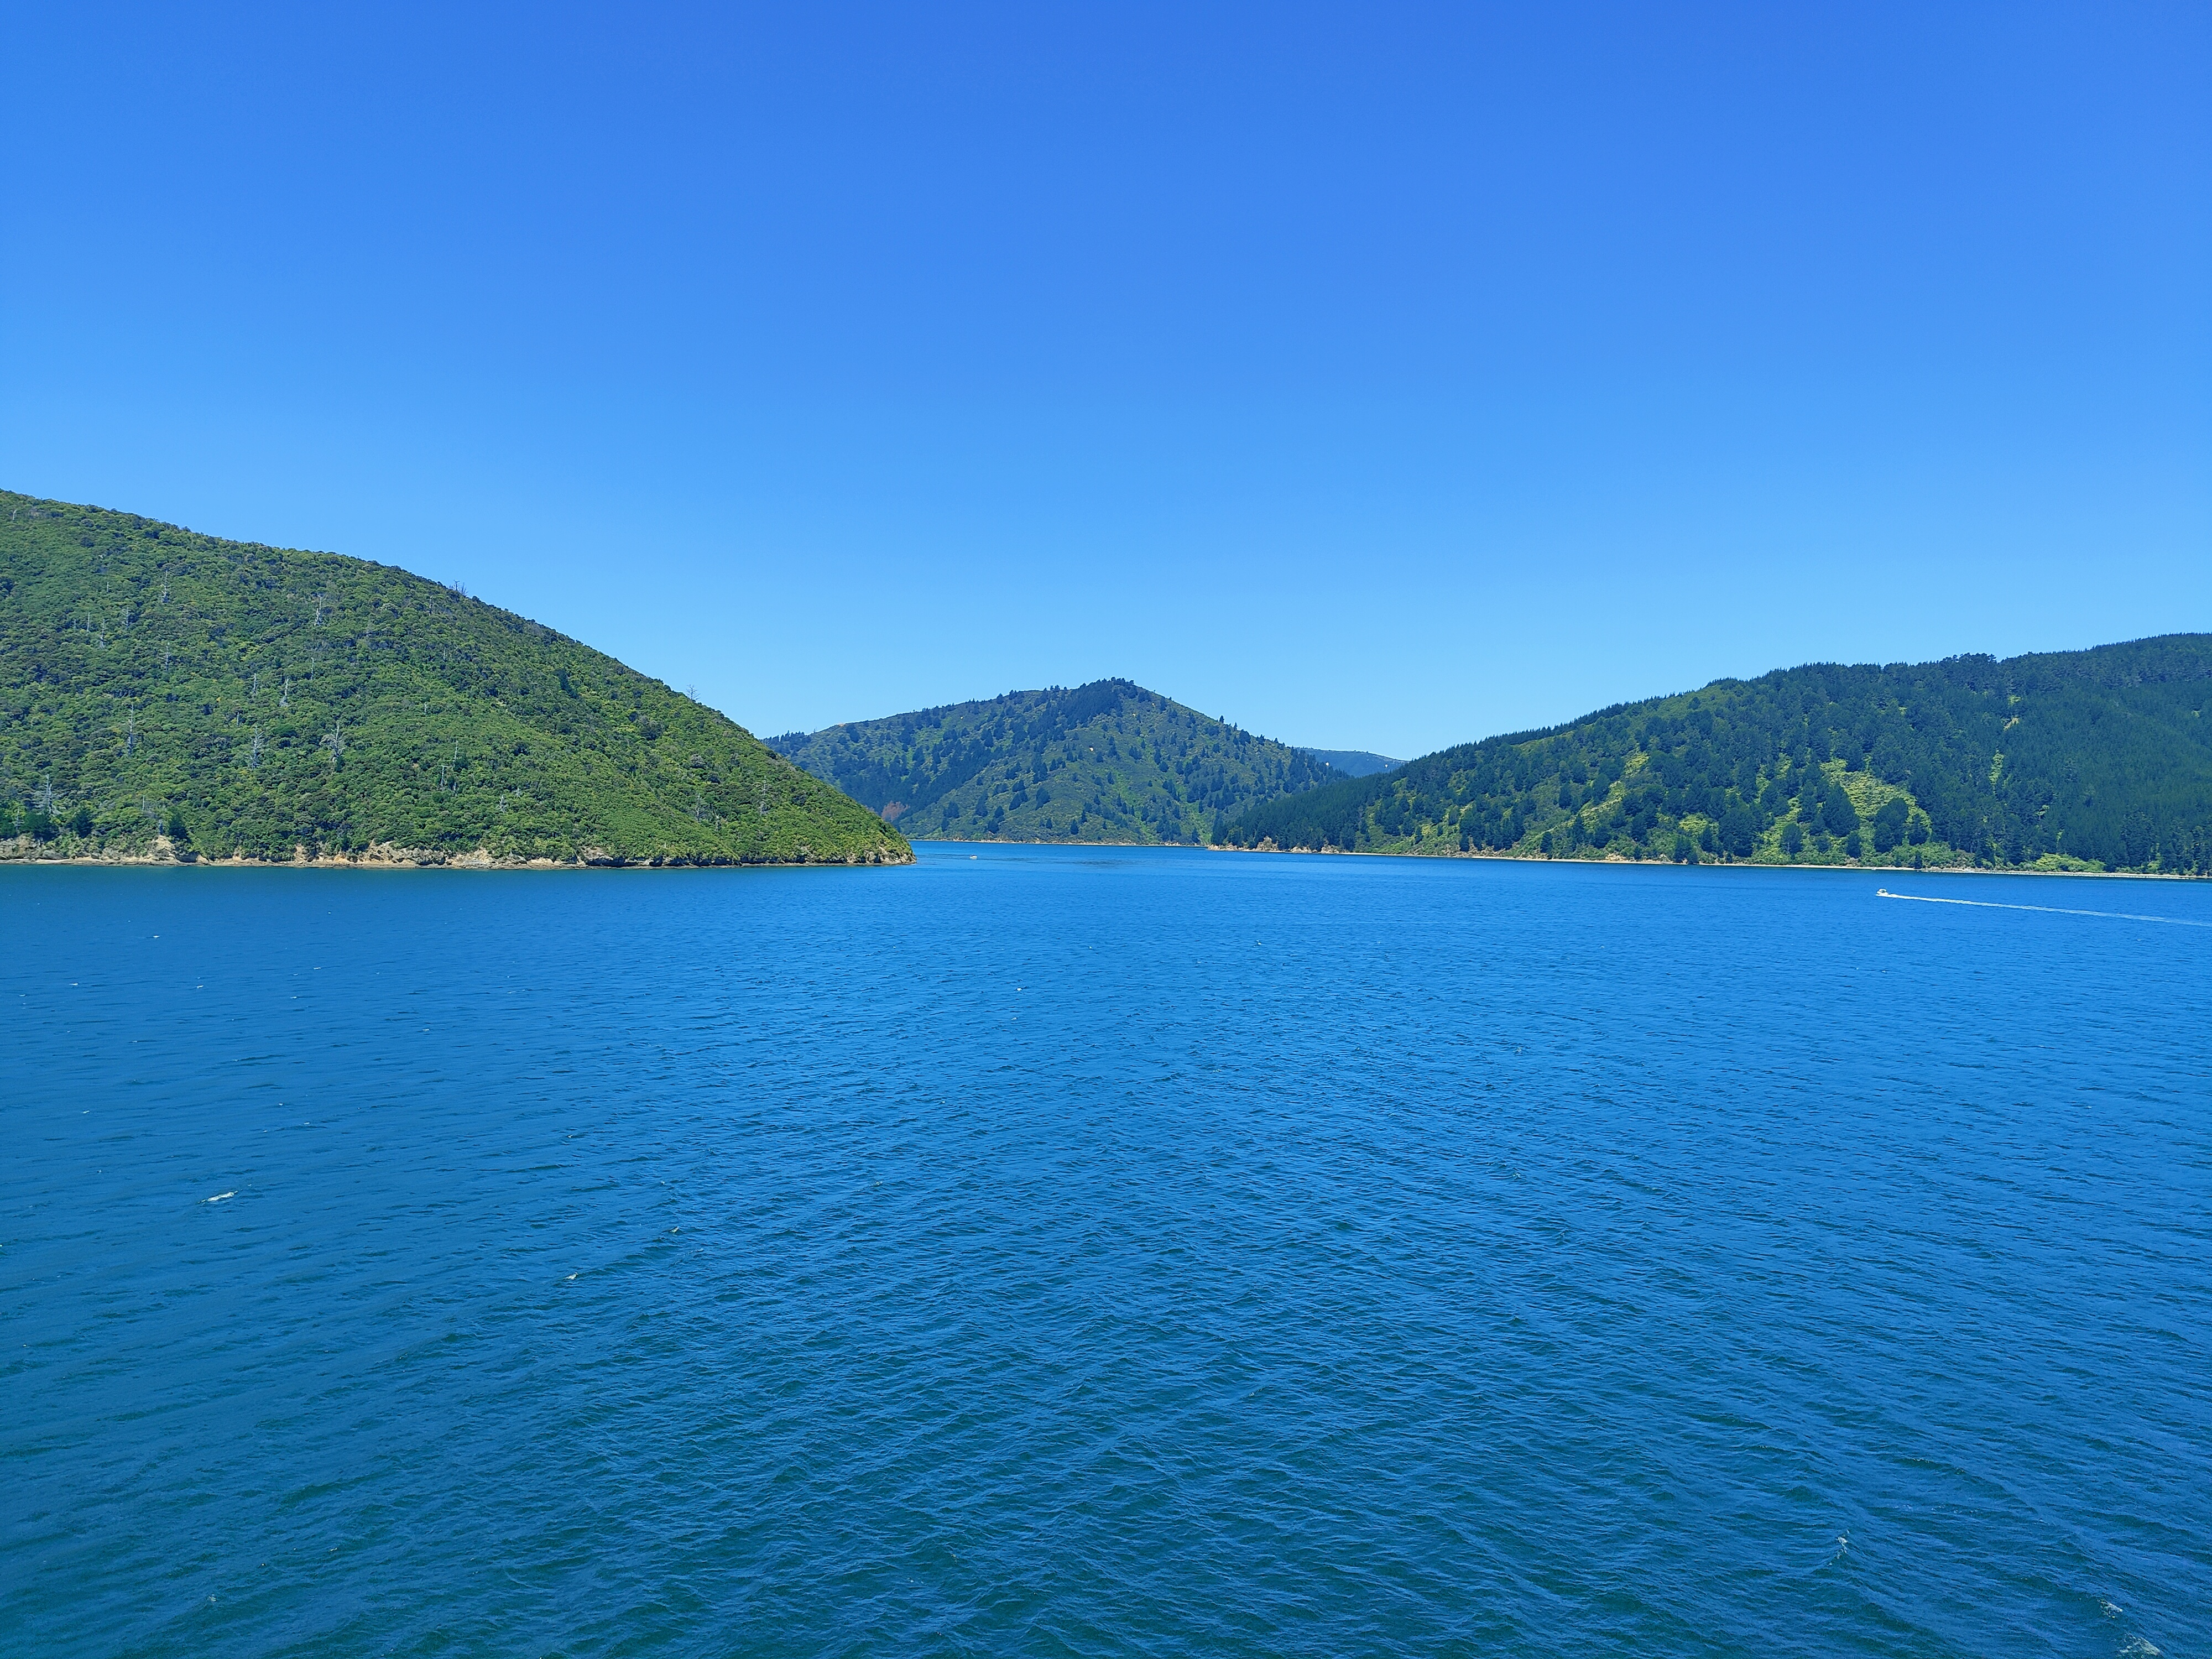 The Marlborough Sounds, as seen from the Interislander ferry from Picton to Wellington